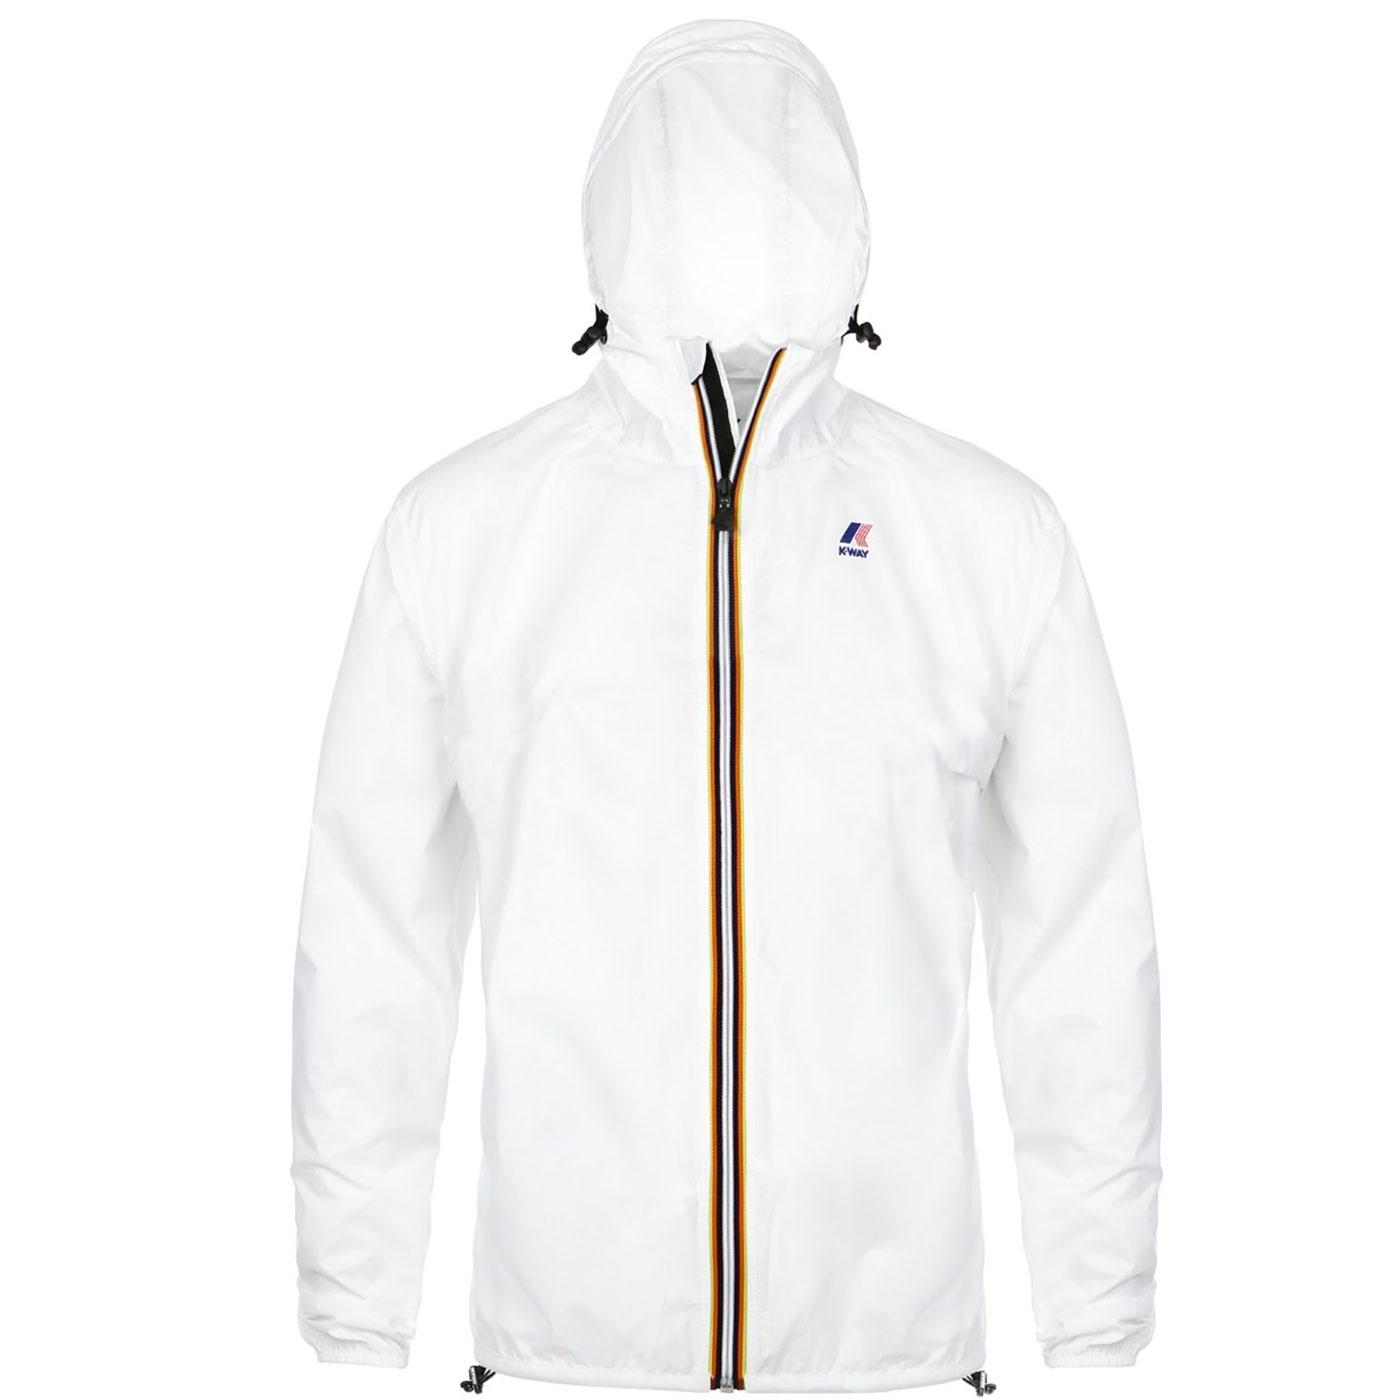 Claude K-WAY Men's Retro Pack-A-Mac Cagoule WHITE